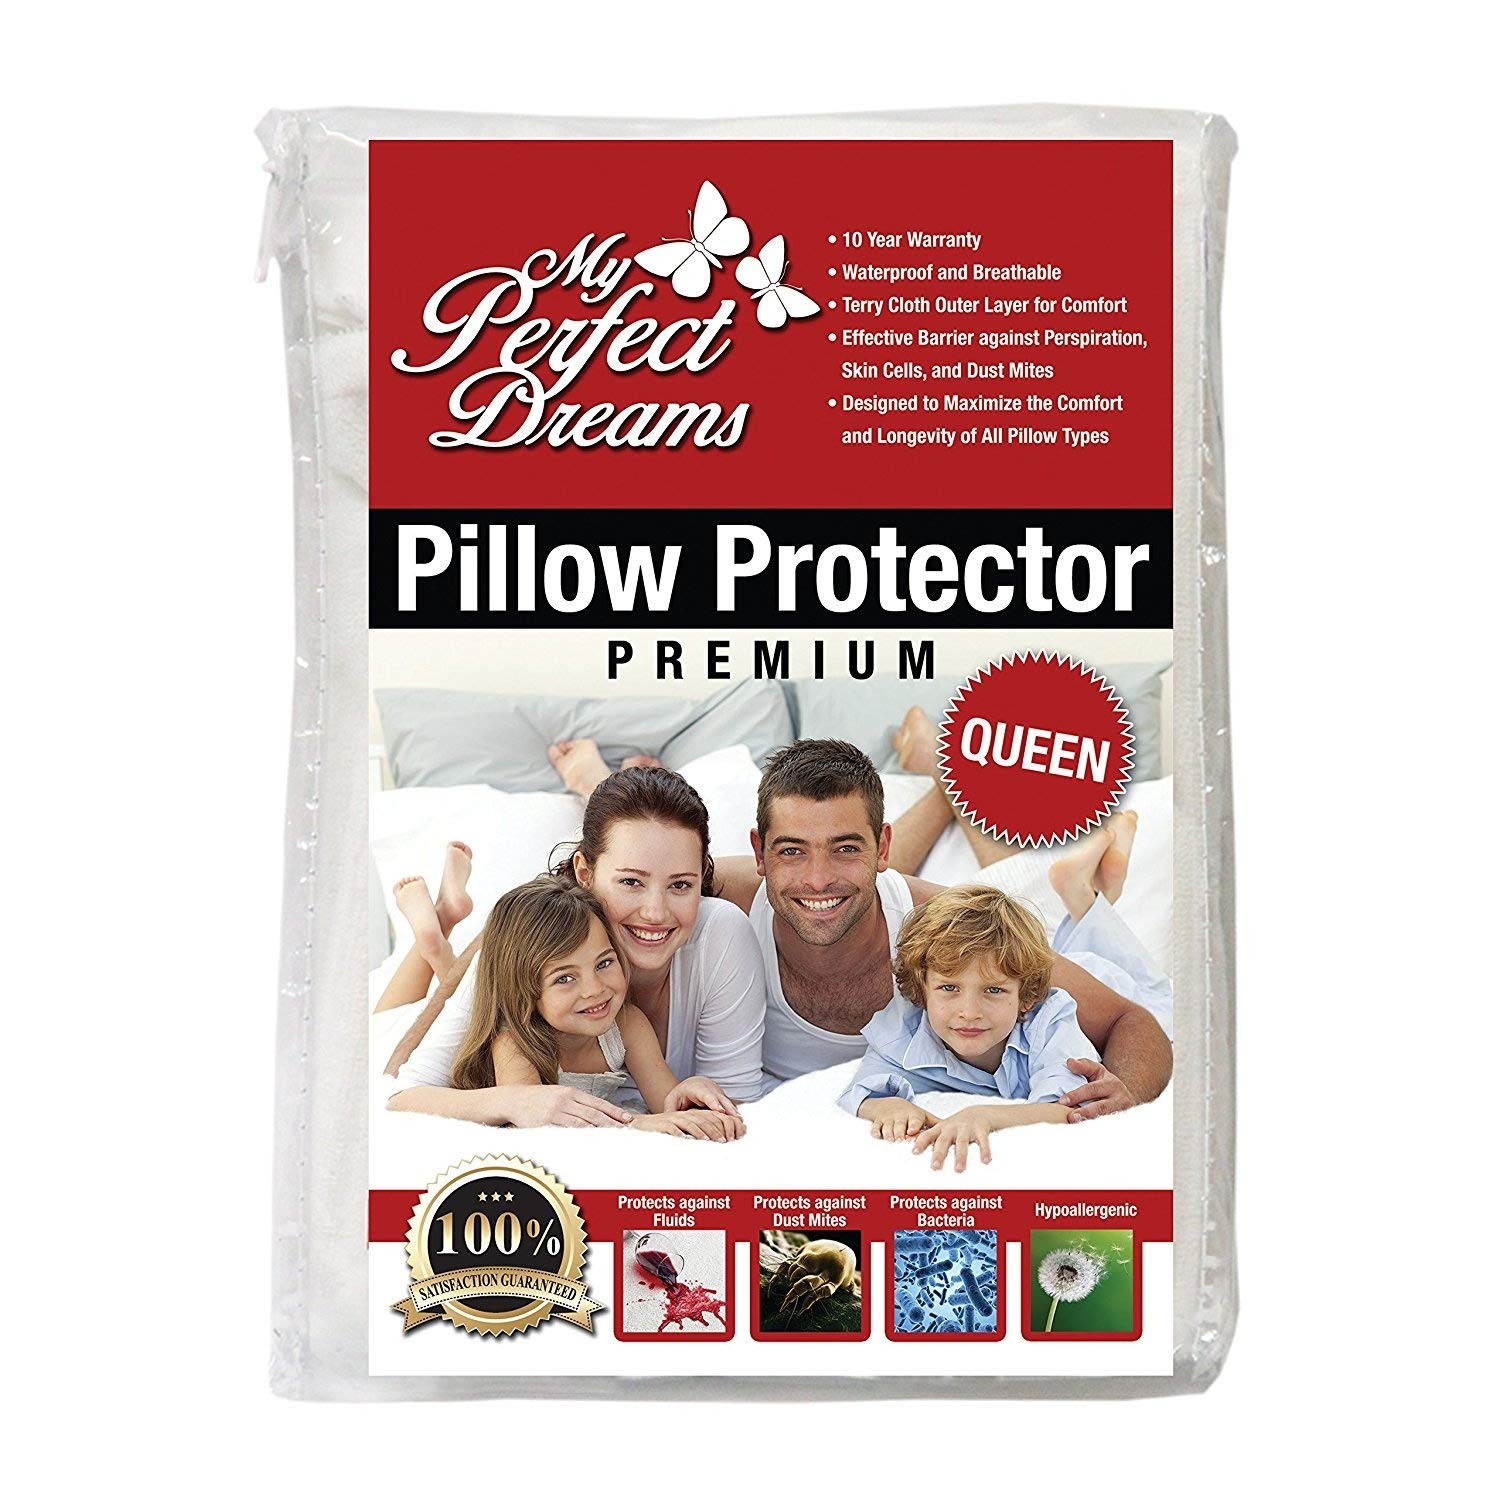 My Perfect Dreams Premium Quality Pillow Protector Wake UP Without A STUFFY Nose Due to Allergies 100/% Waterproof Breathable Zippered Hypoallergenic Dust Mite and Bed Bug Protection Queen